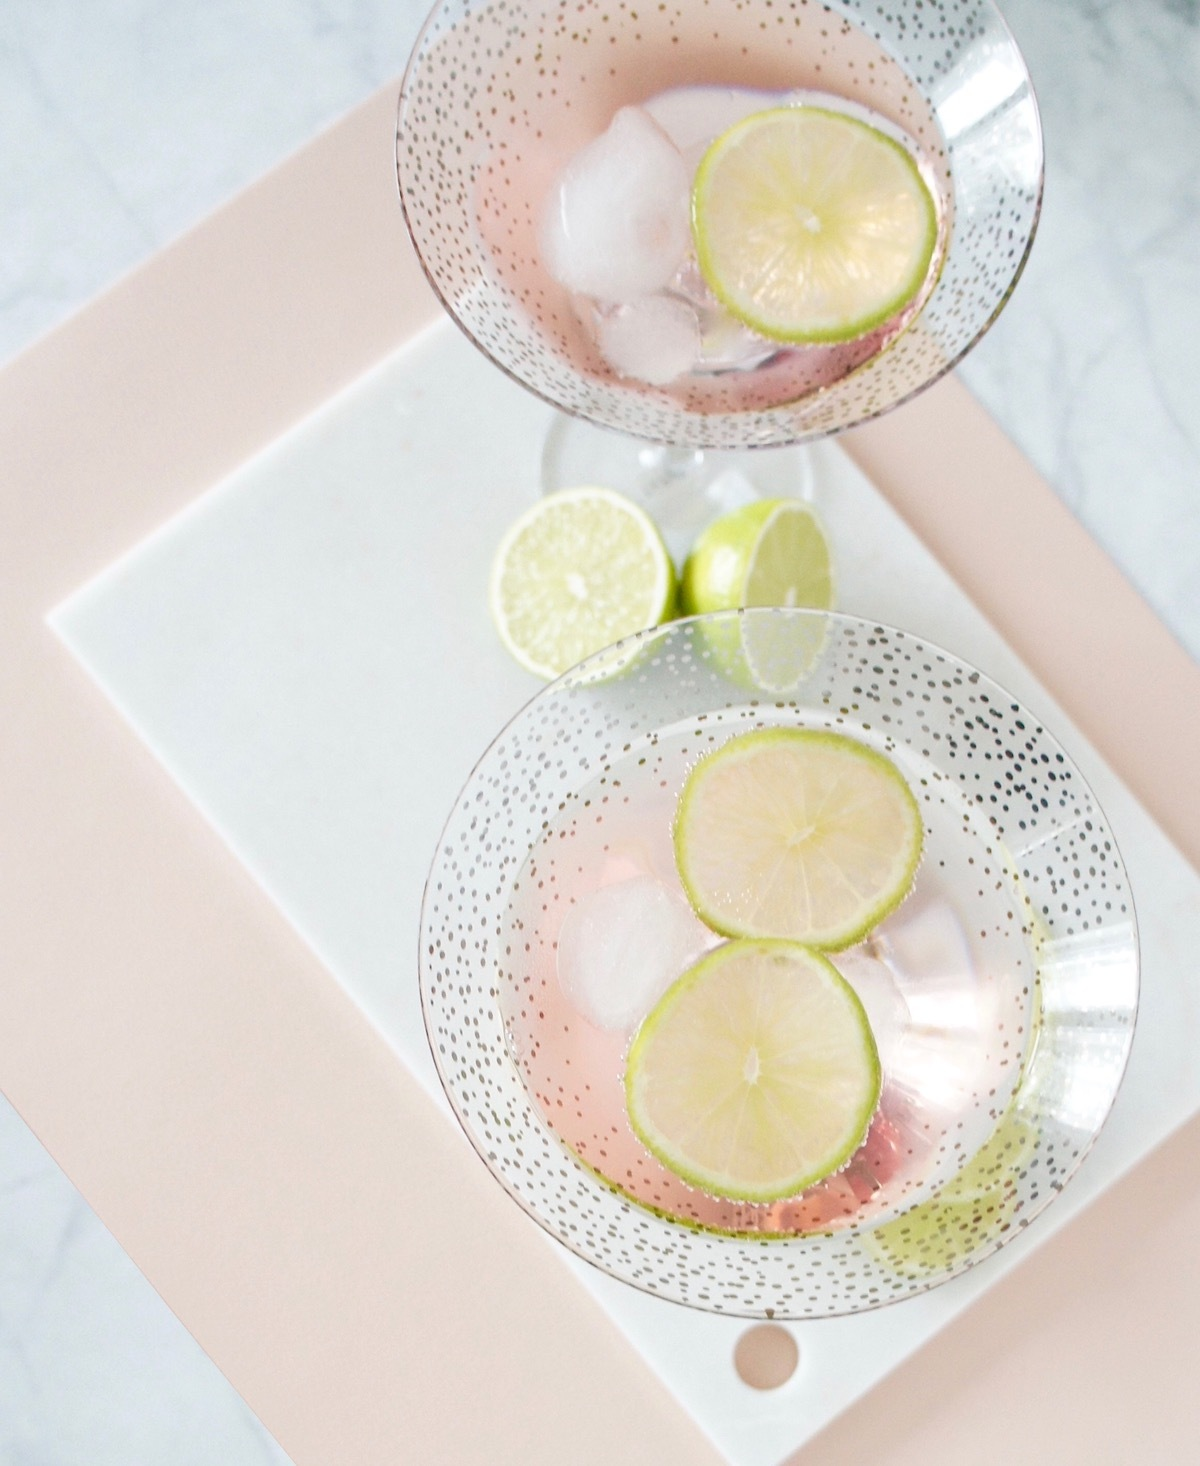 Cockatil_Rosen_Limo_Fentimans_Rose_Lemonade_Cocktailglaser_Silber_Rand_Goldrand_Bloomingville_online_kaufen